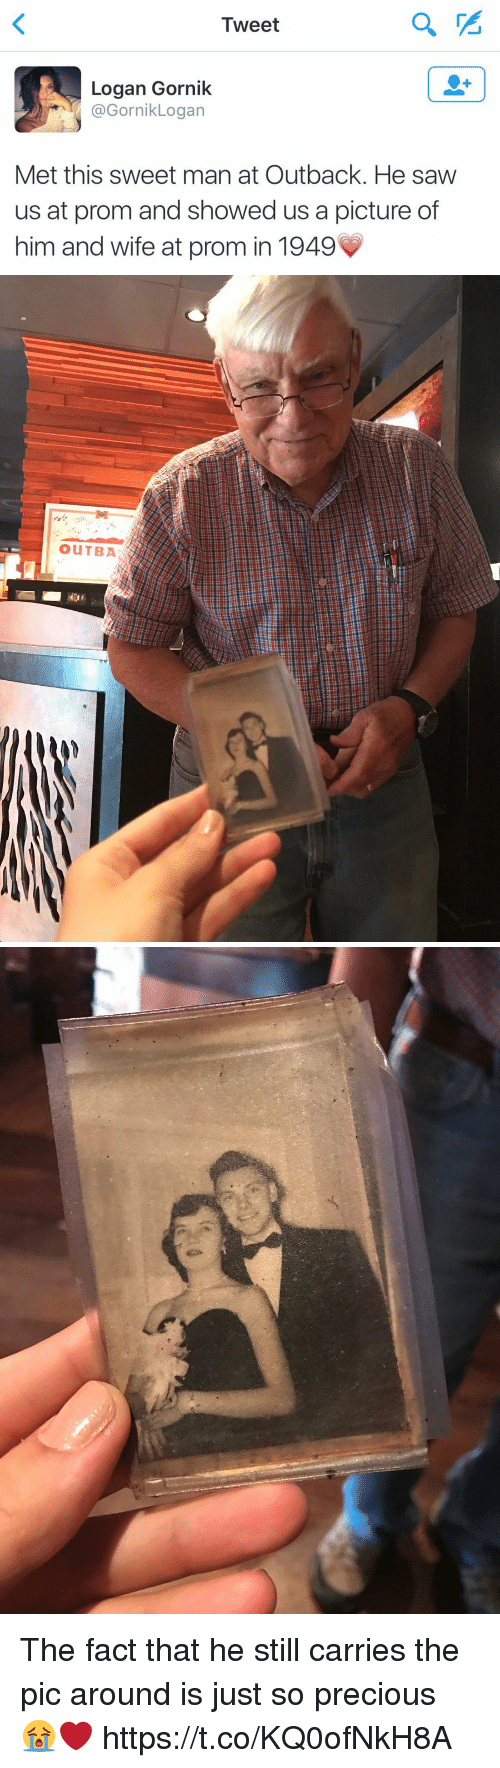 Precious, Saw, and Outback: Tweet  2  Logan Gornik  @GornikLogan  Met this sweet man at Outback. He saw  us at prom and showed us a picture of  him and wife at prom in 1949   OUTBA The fact that he still carries the pic around is just so precious 😭❤️ https://t.co/KQ0ofNkH8A